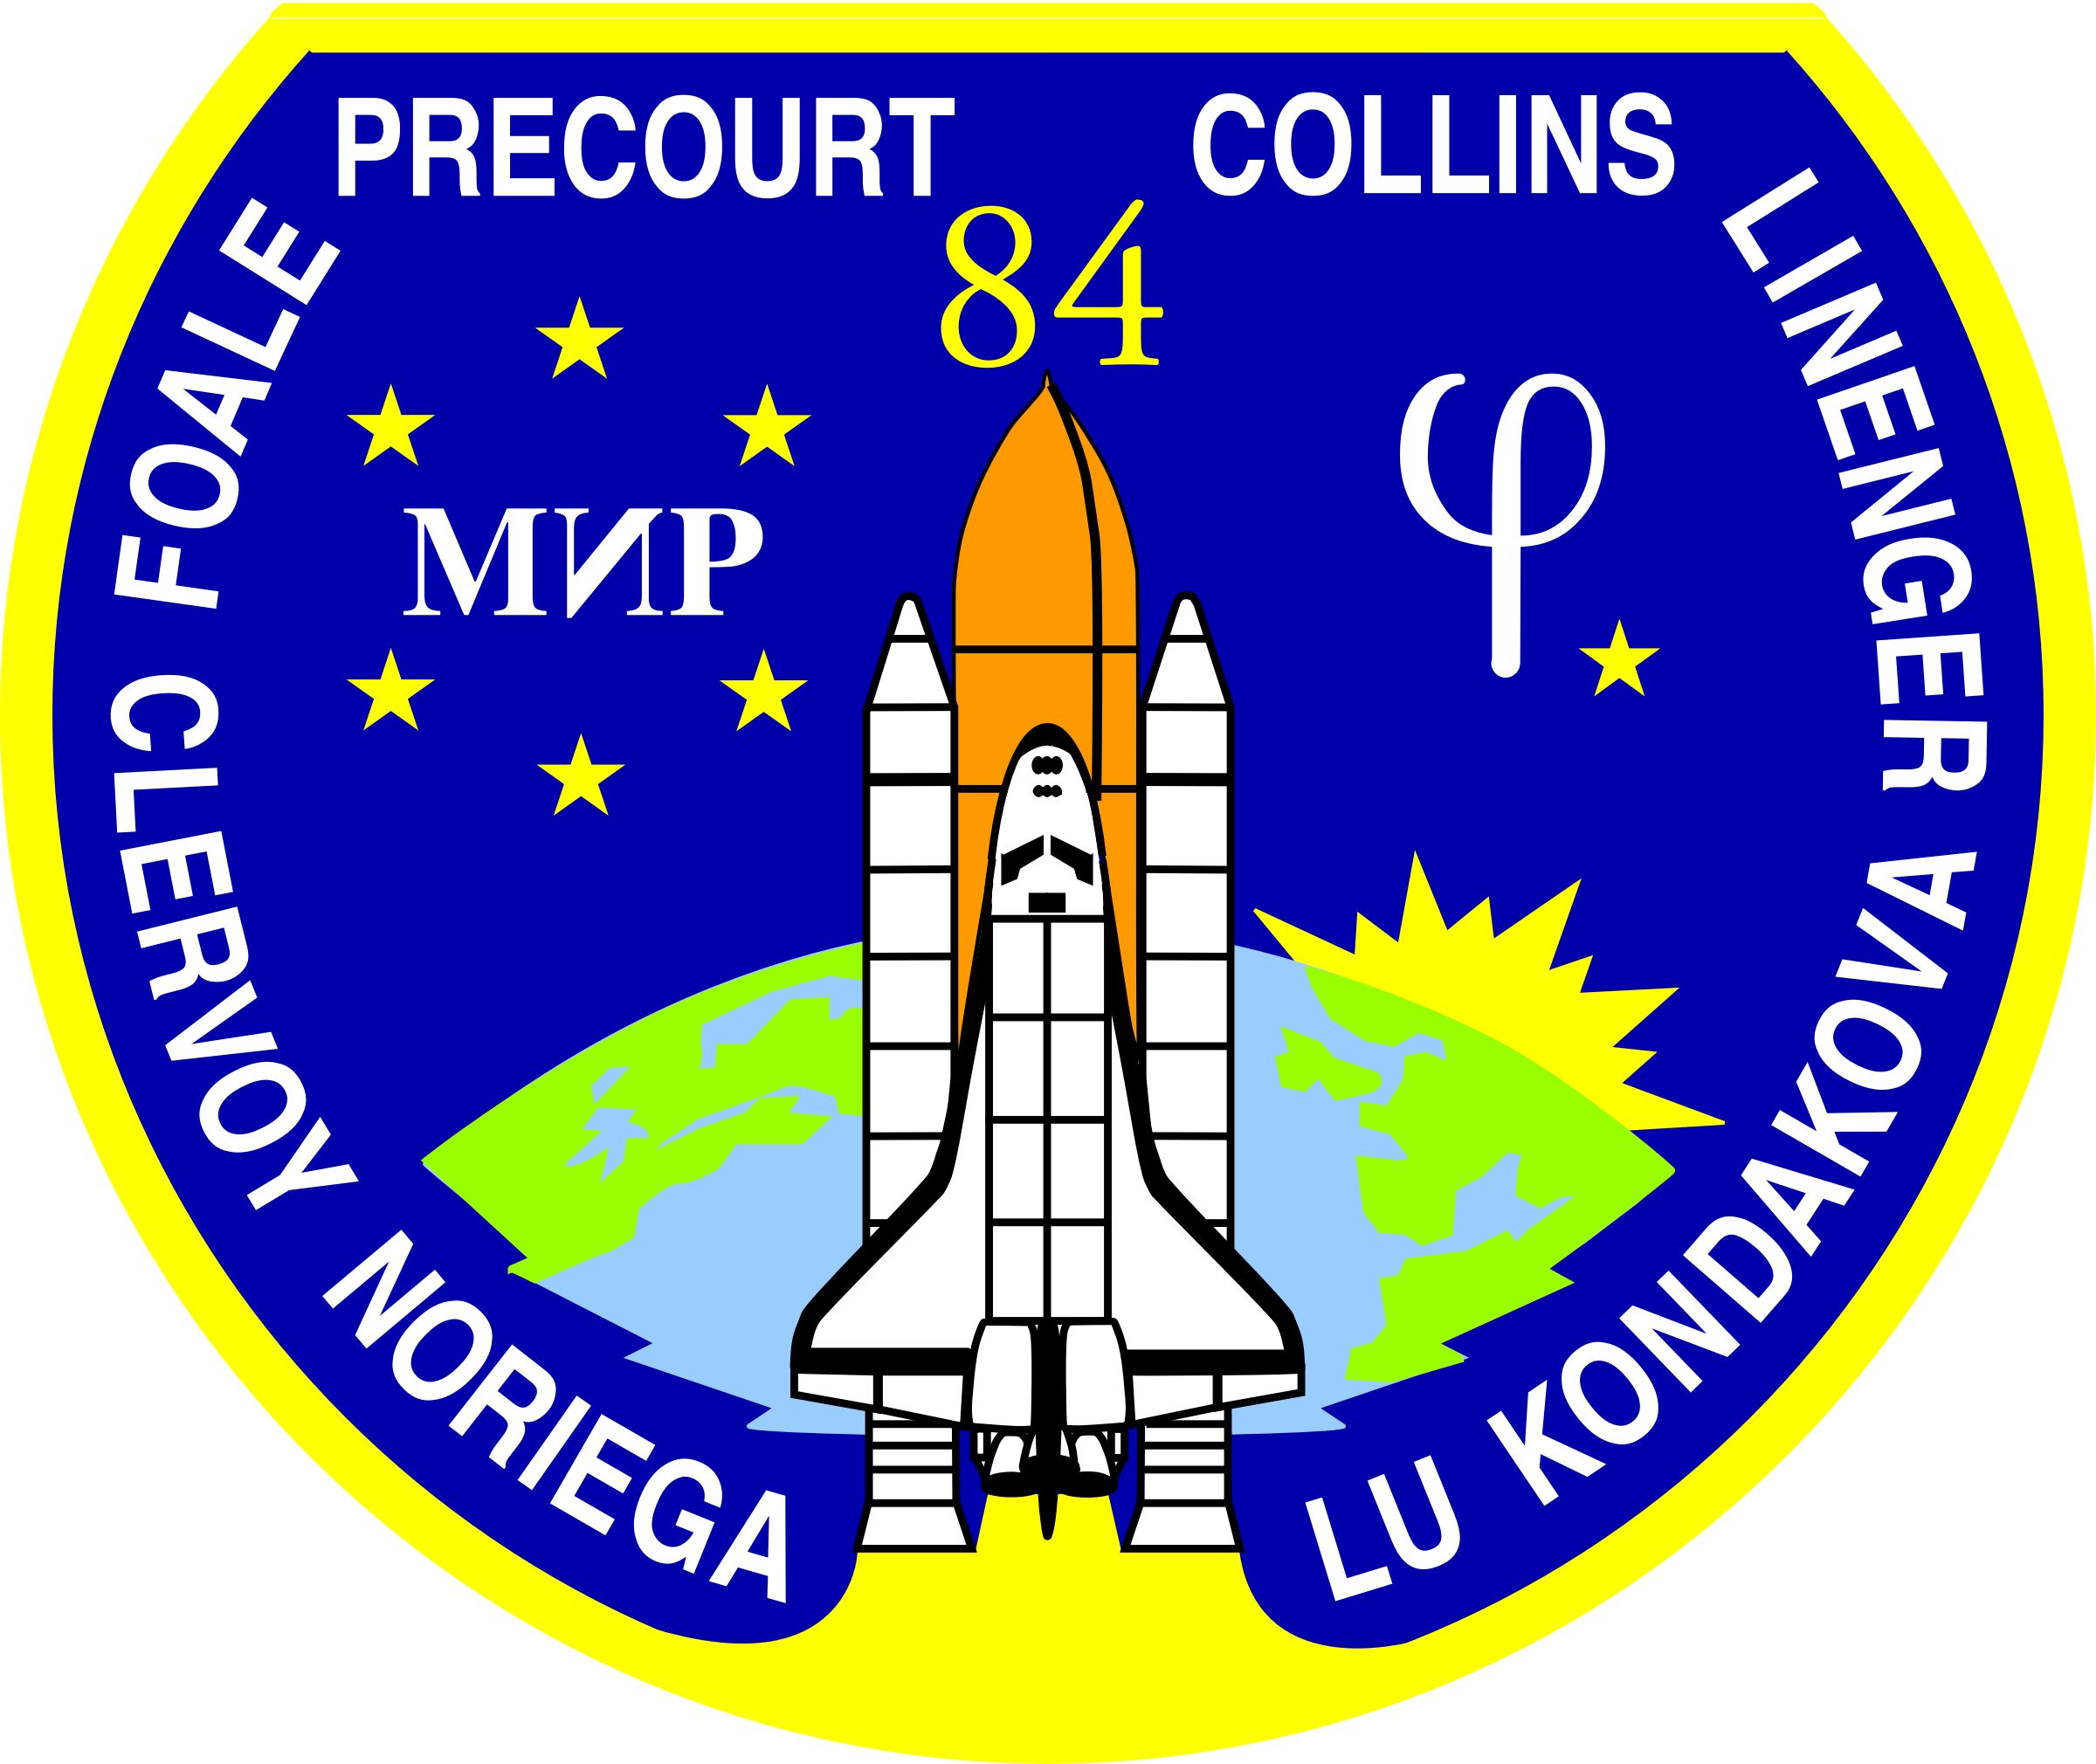 NASA STS-84 Patch by NASA